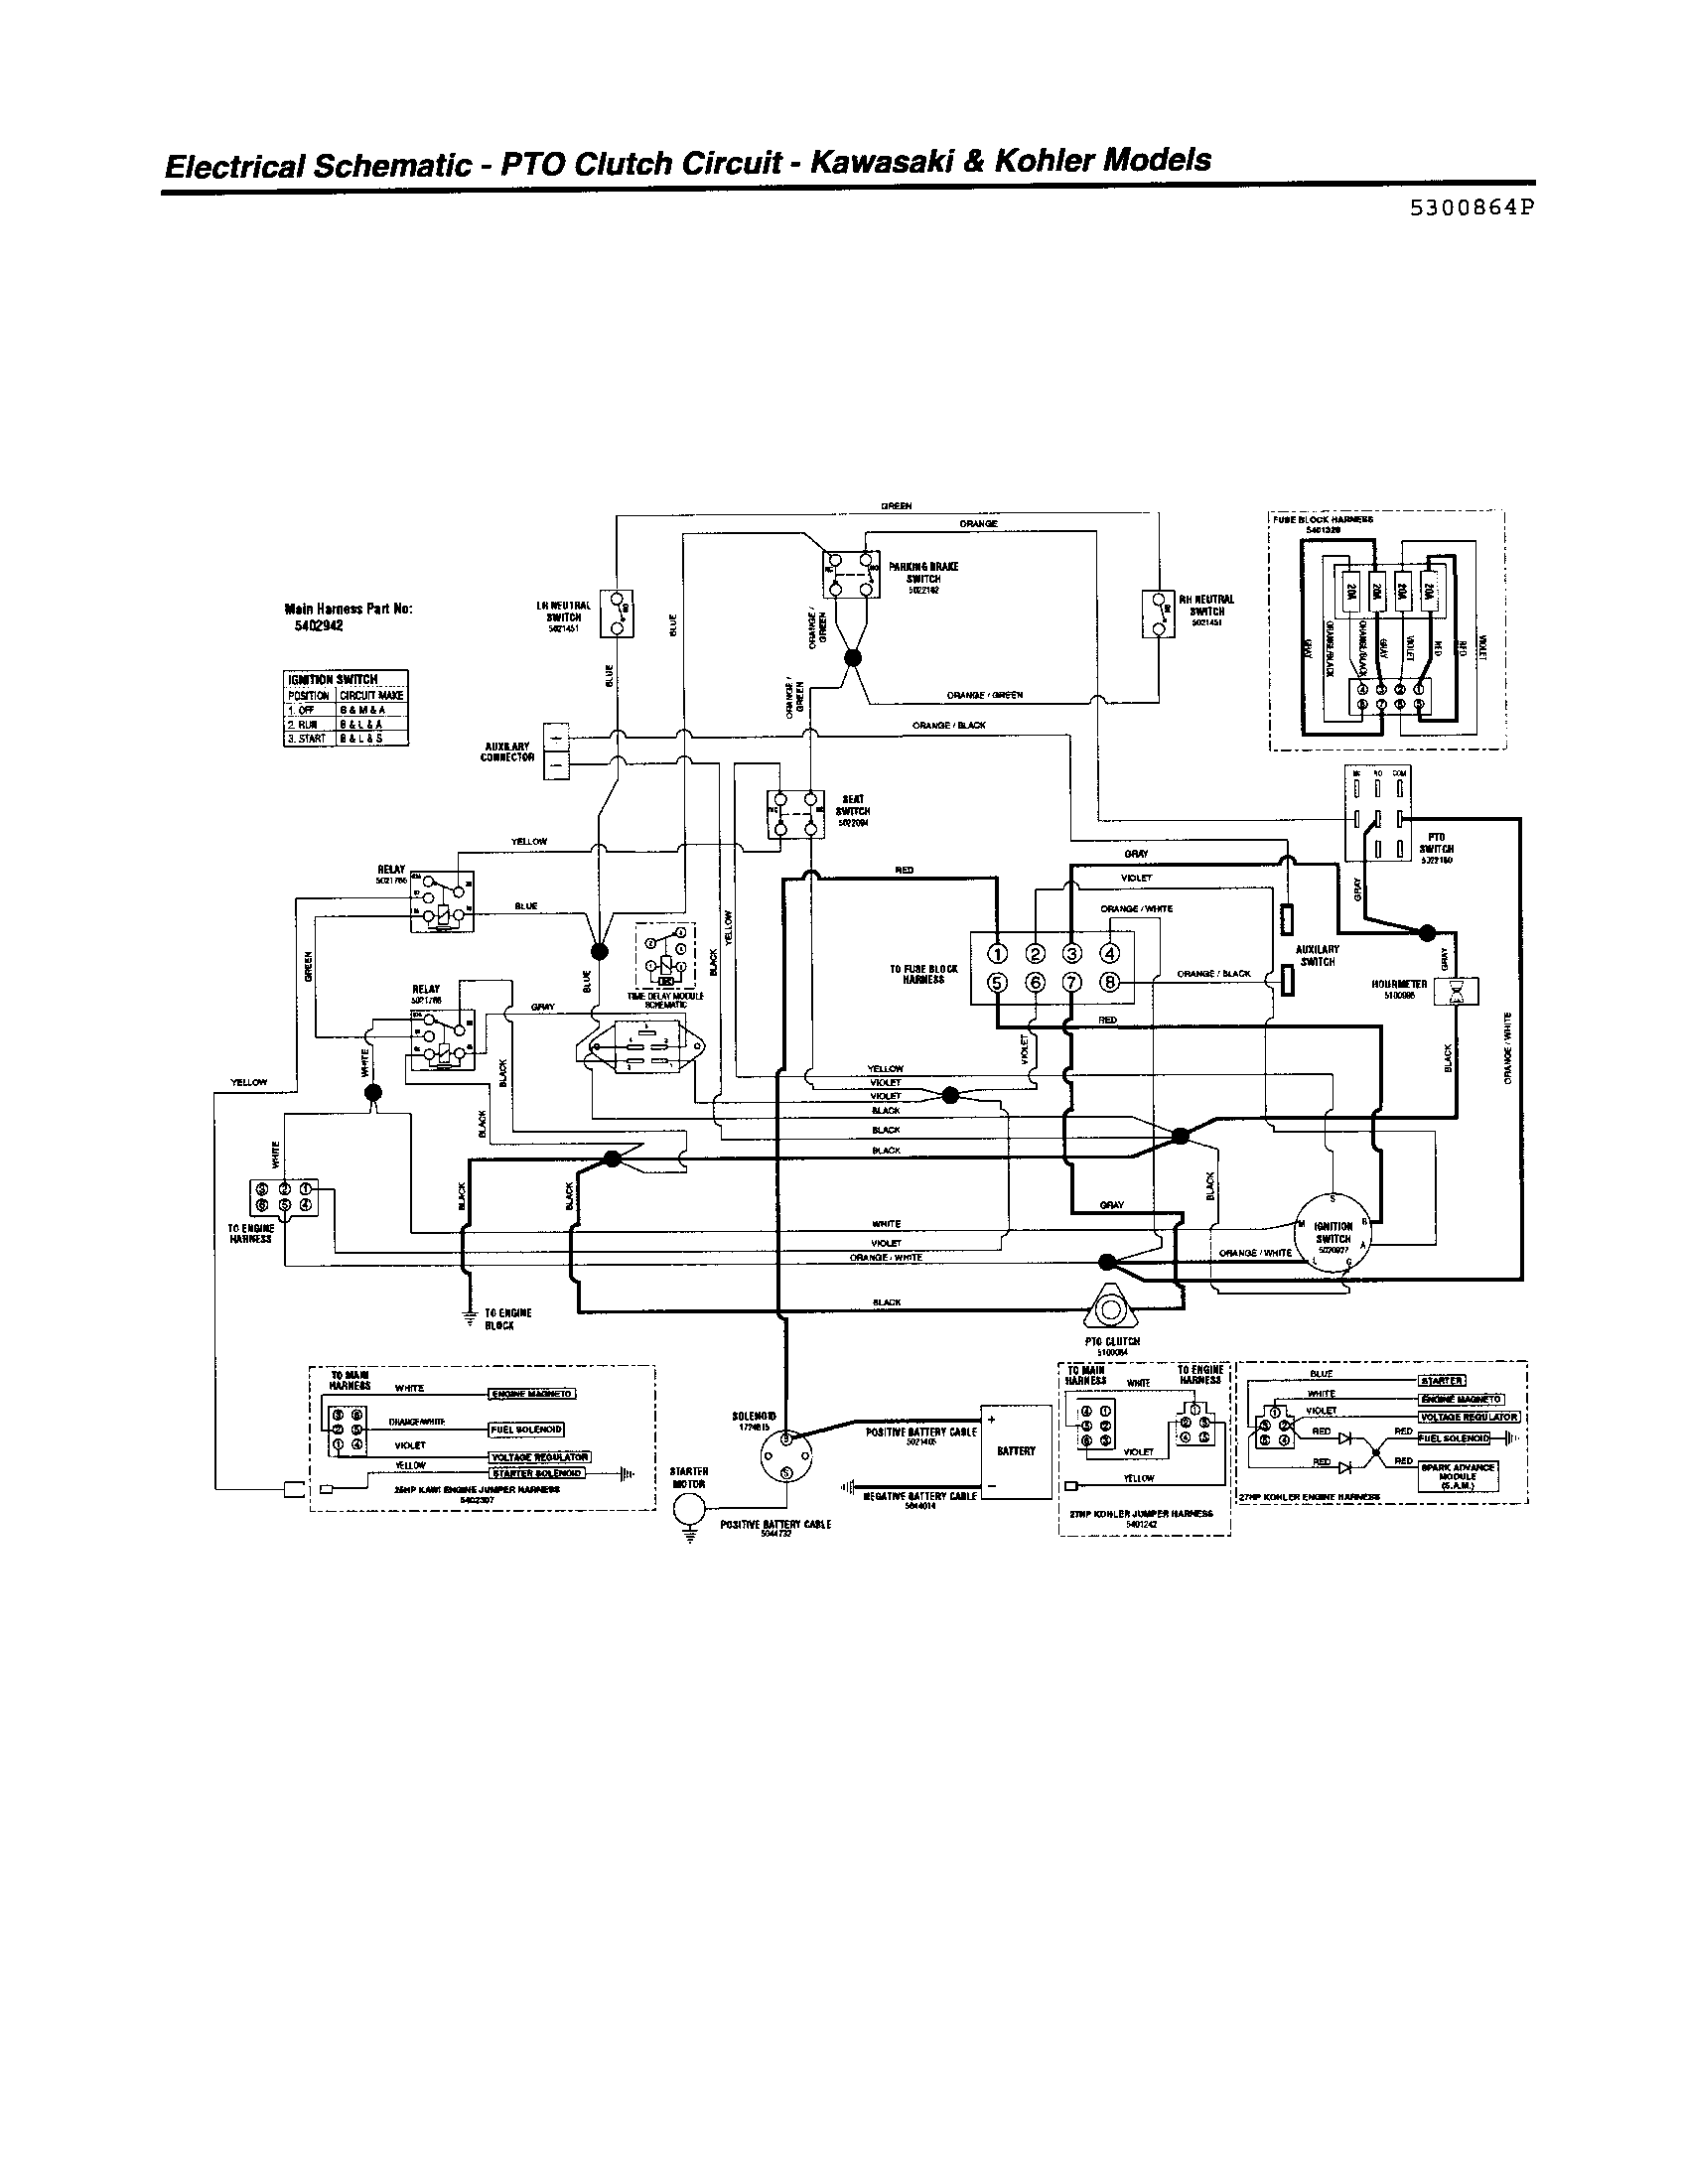 edd203c96939fe65be99faf05b27f9f2 country clipper jazee mowers wiring diagrams country clipper riding mower wiring diagram at bayanpartner.co